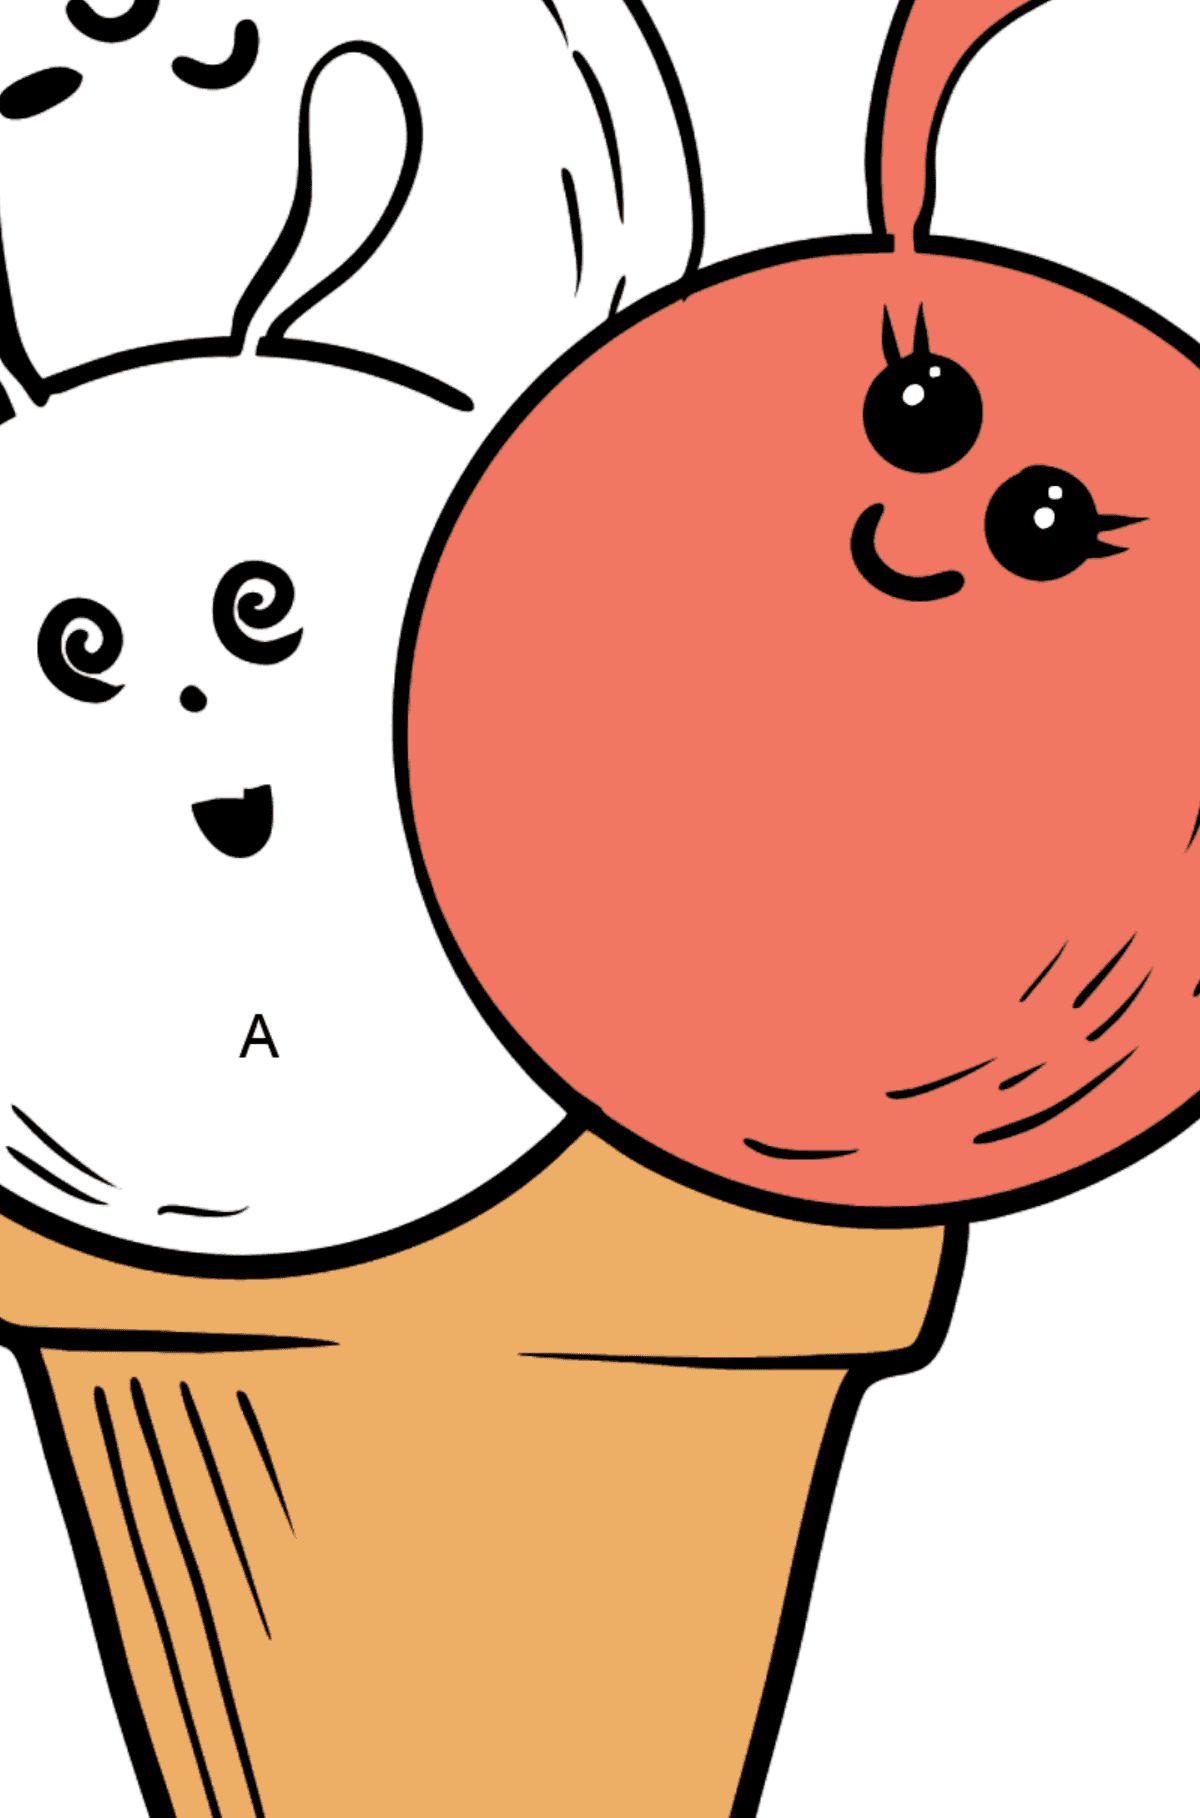 Kawaii Ice Cream - Apple and Raspberry coloring page - Coloring by Letters for Kids